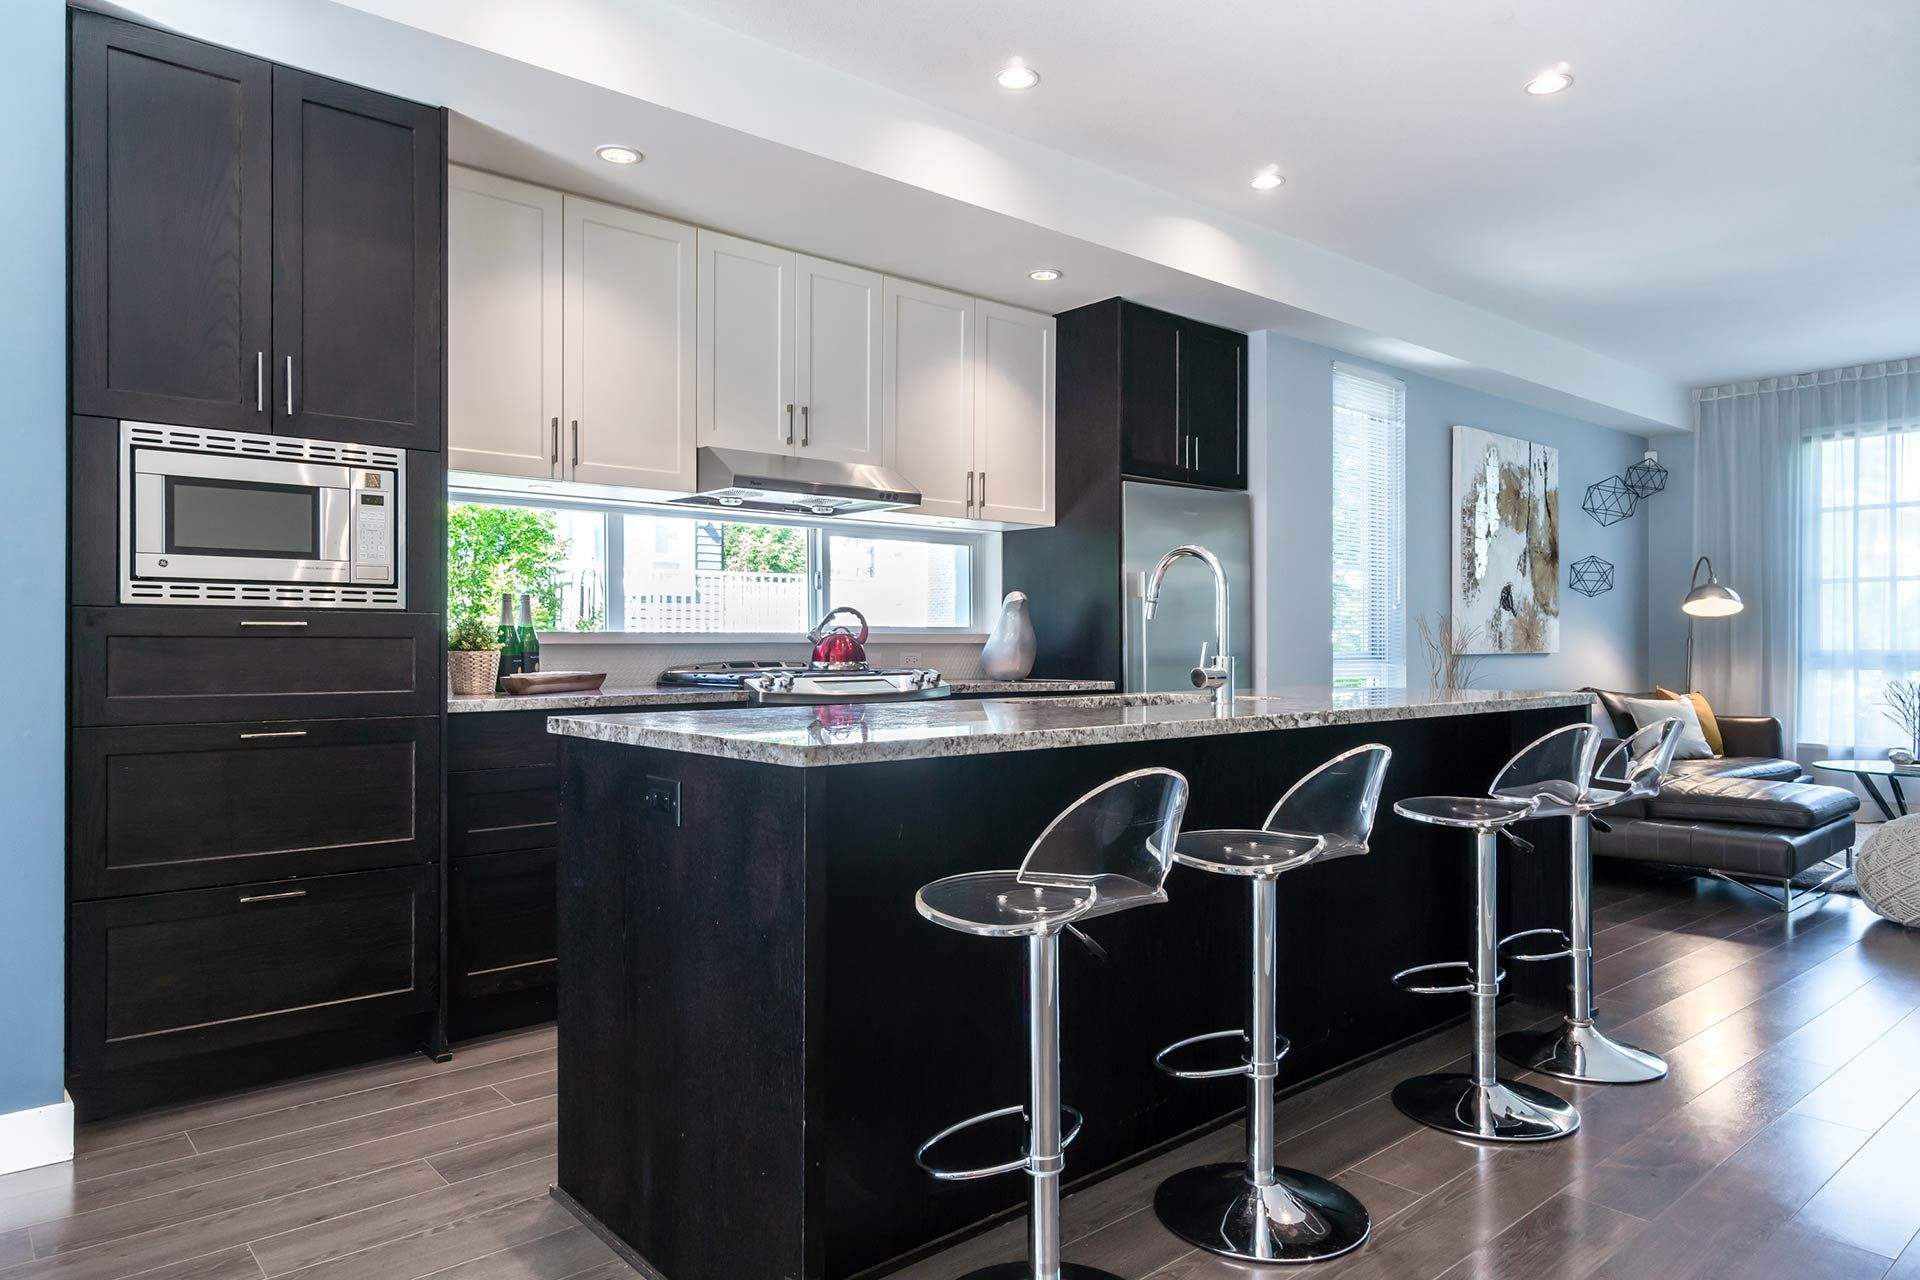 """Photo 8: Photos: 154 548 FOSTER Avenue in Coquitlam: Coquitlam West Townhouse for sale in """"BLACK + WHITE"""" : MLS®# R2587208"""